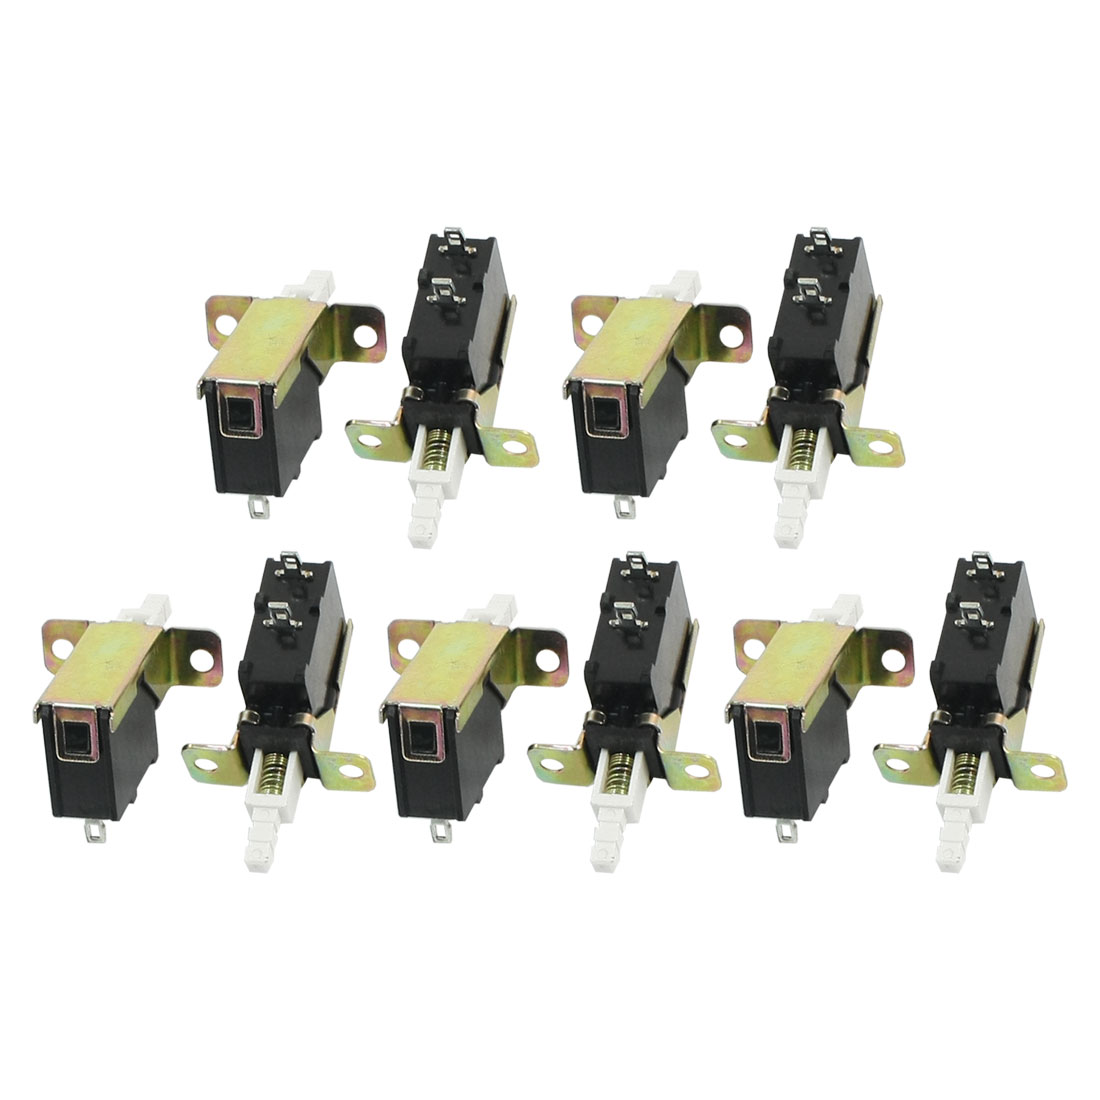 10 Pcs 2 Pin SPST Spring Loaded Locking Push Button Switch